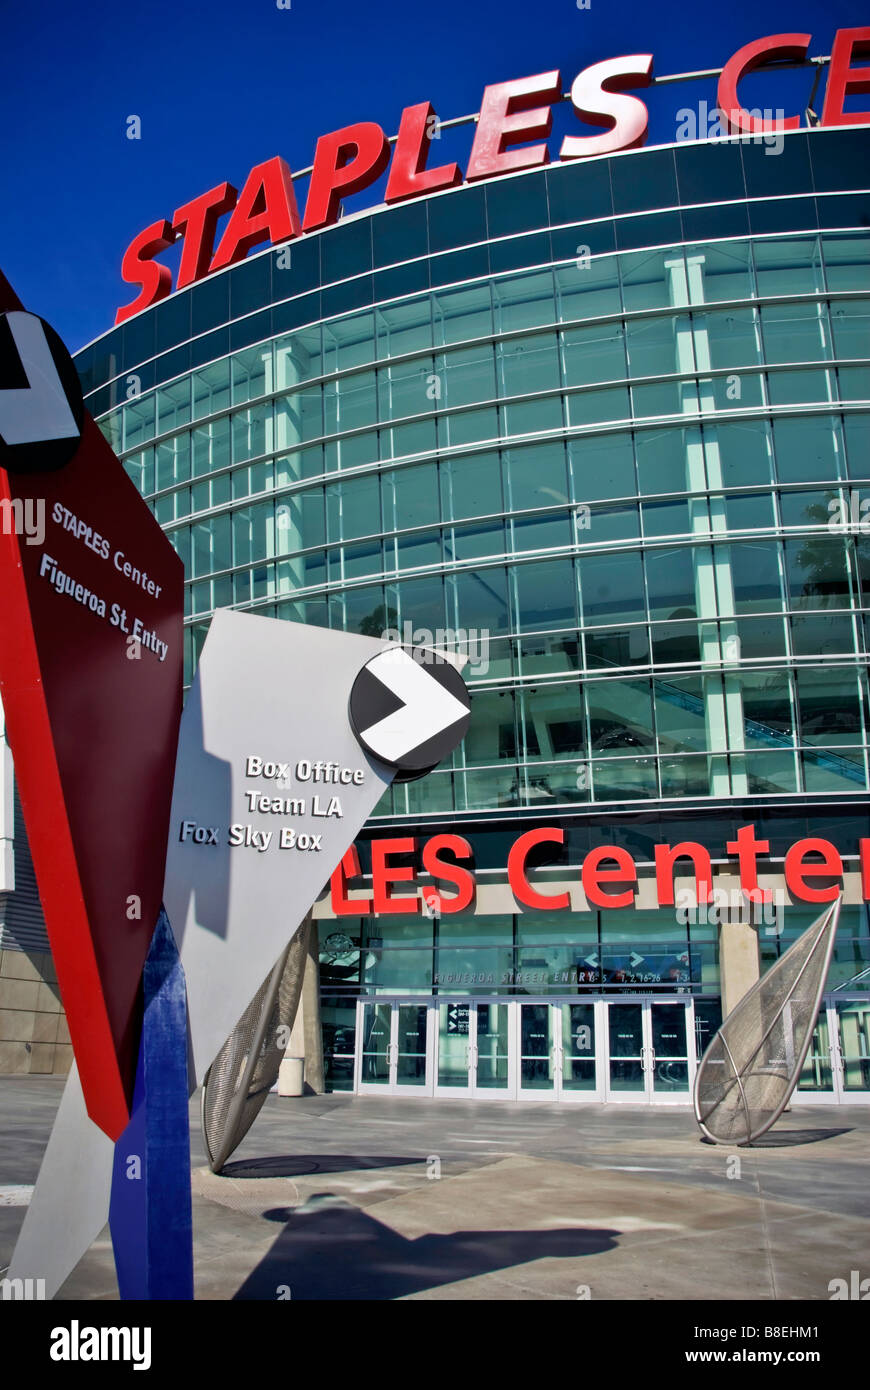 Staples Center multi-purpose sports arena Downtown Los Angeles, California - Stock Image